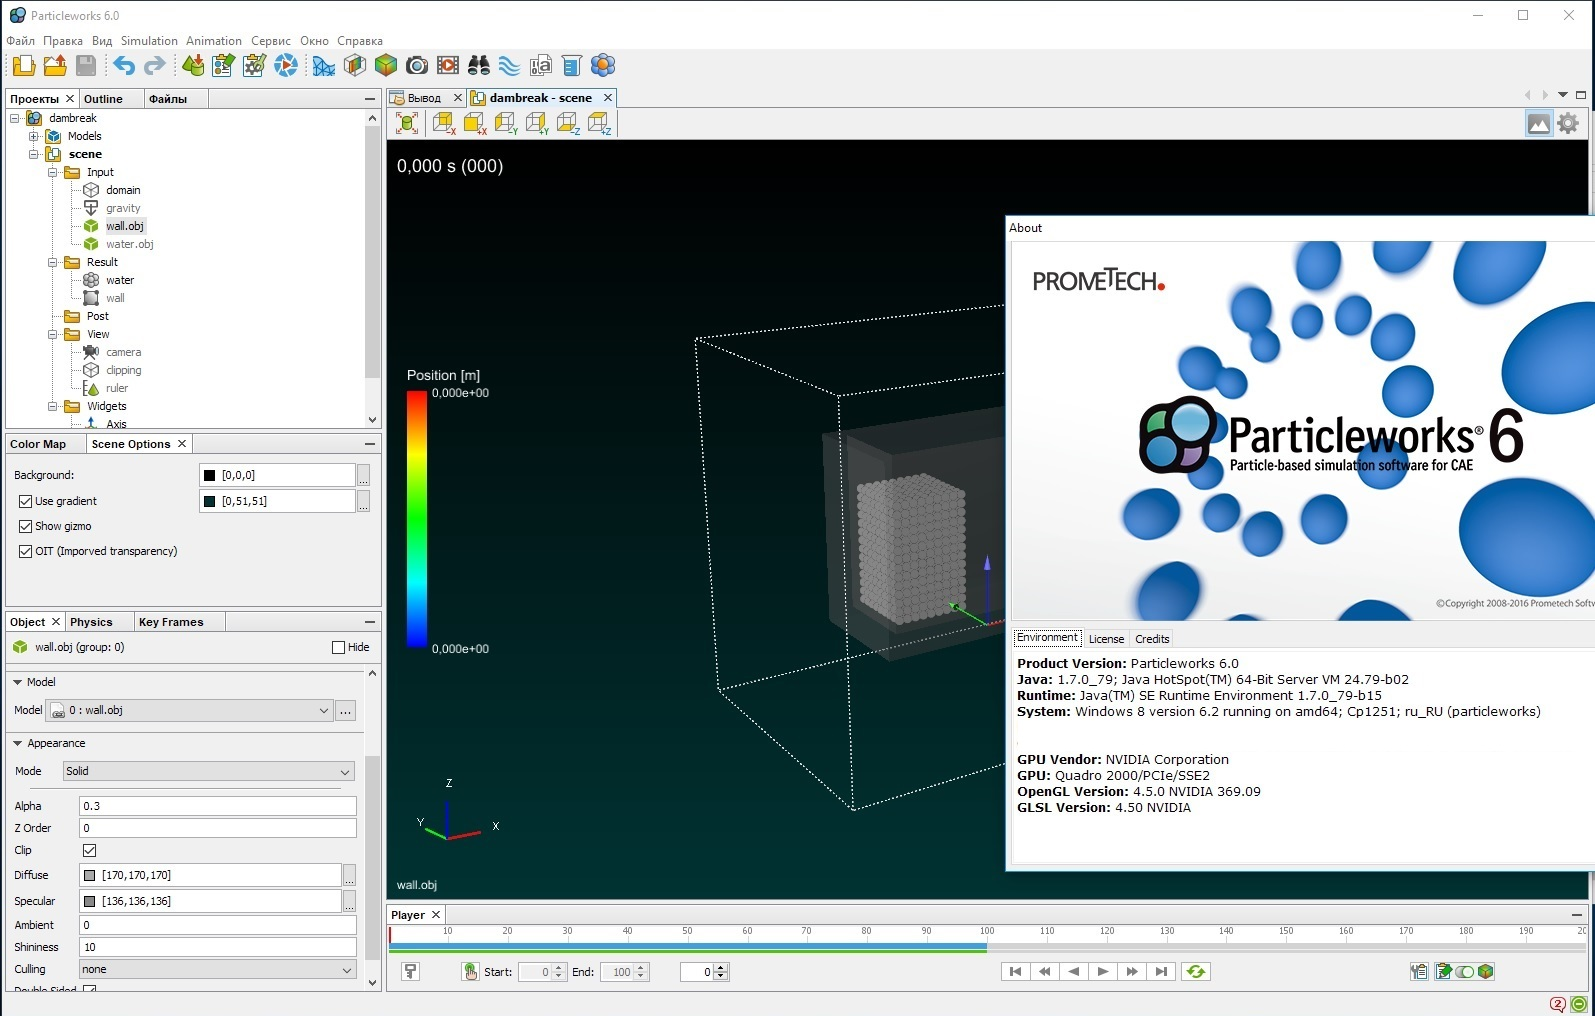 Working with Prometech ParticleWorks 6.0 x64 full license